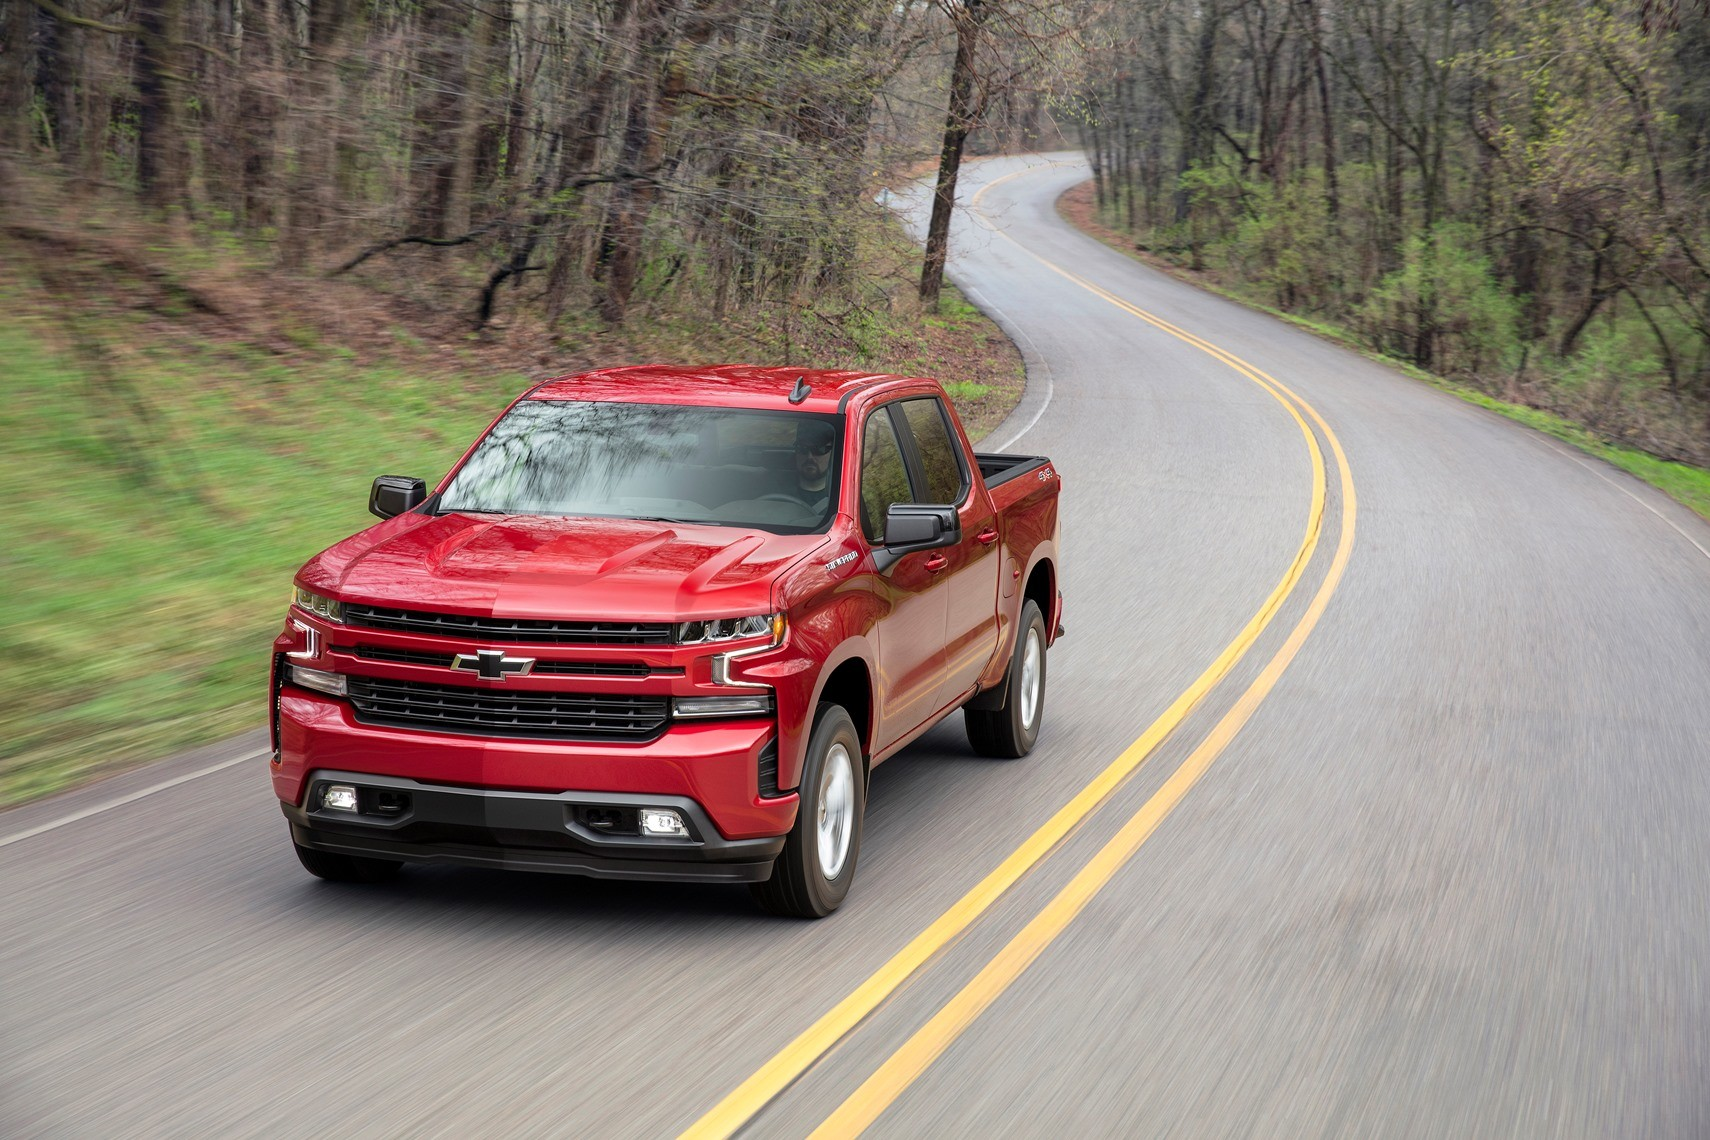 2019 Chevrolet Silverado 1500 Comes With The Largest Bed ...